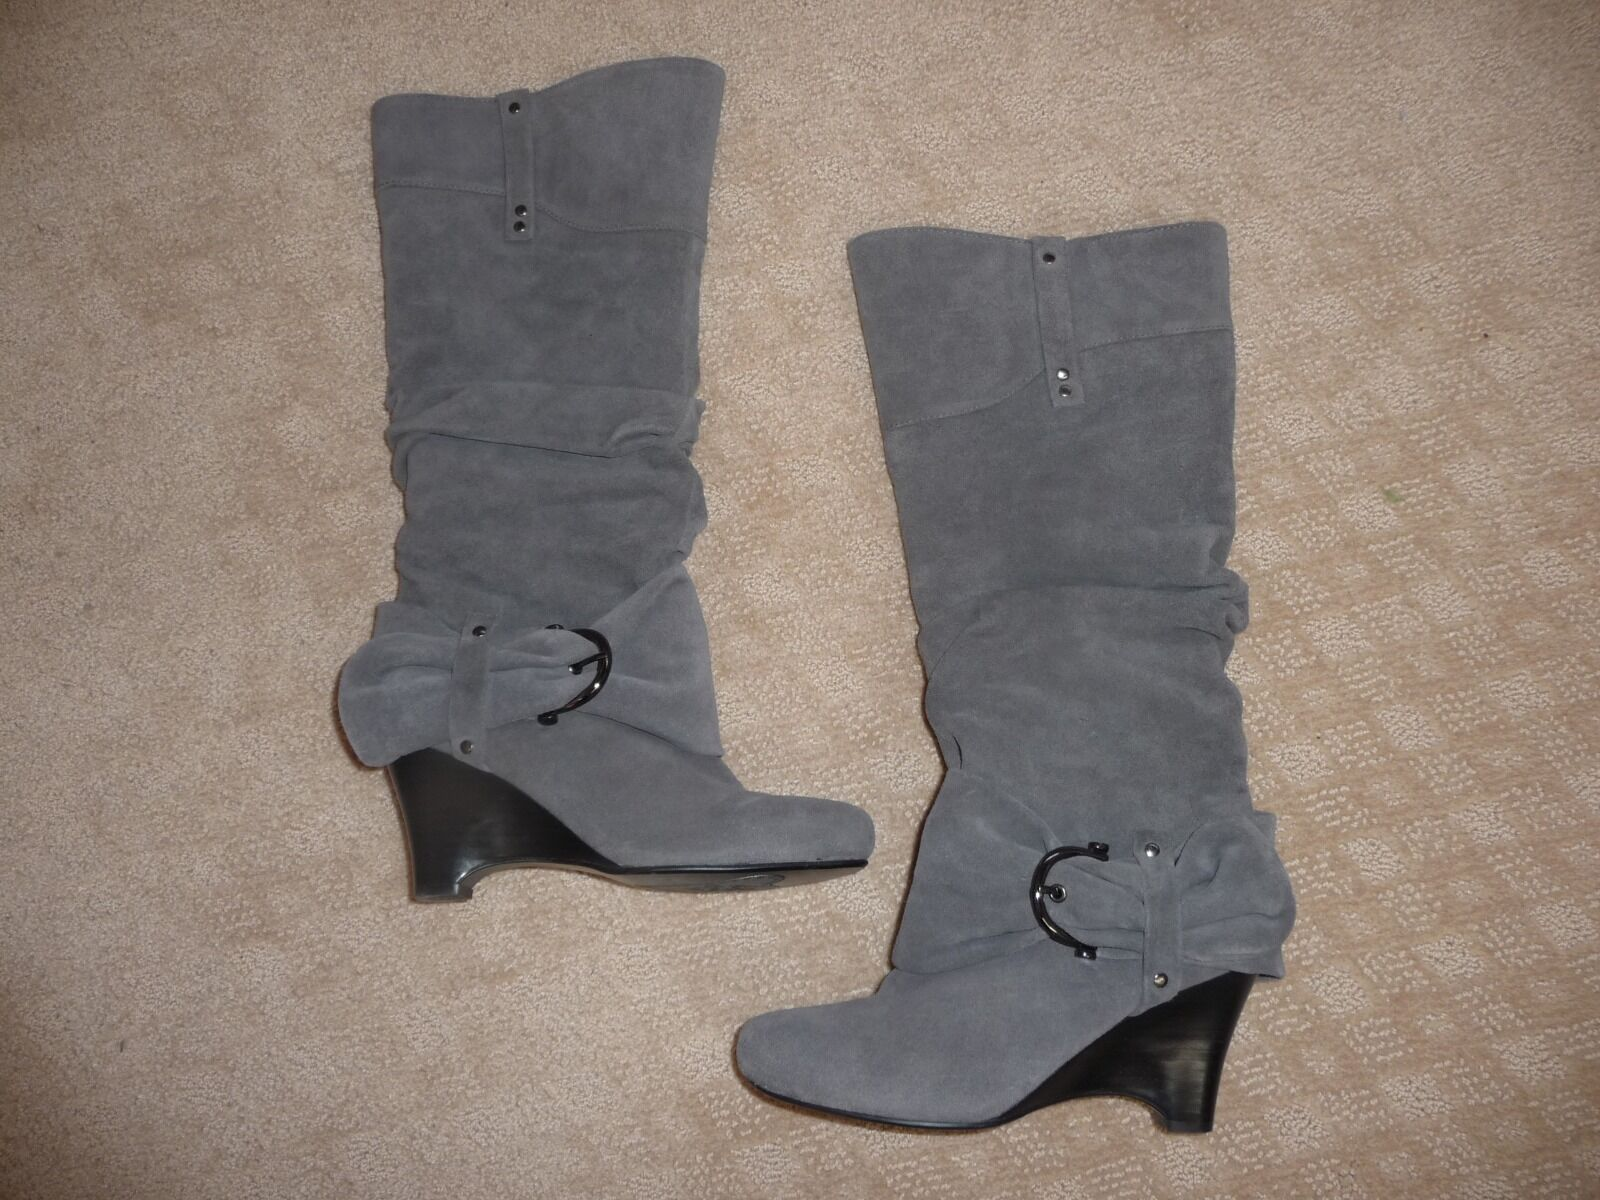 Suede Boots, Grey, Tall, Size 6. Wedge Heel & side zipper